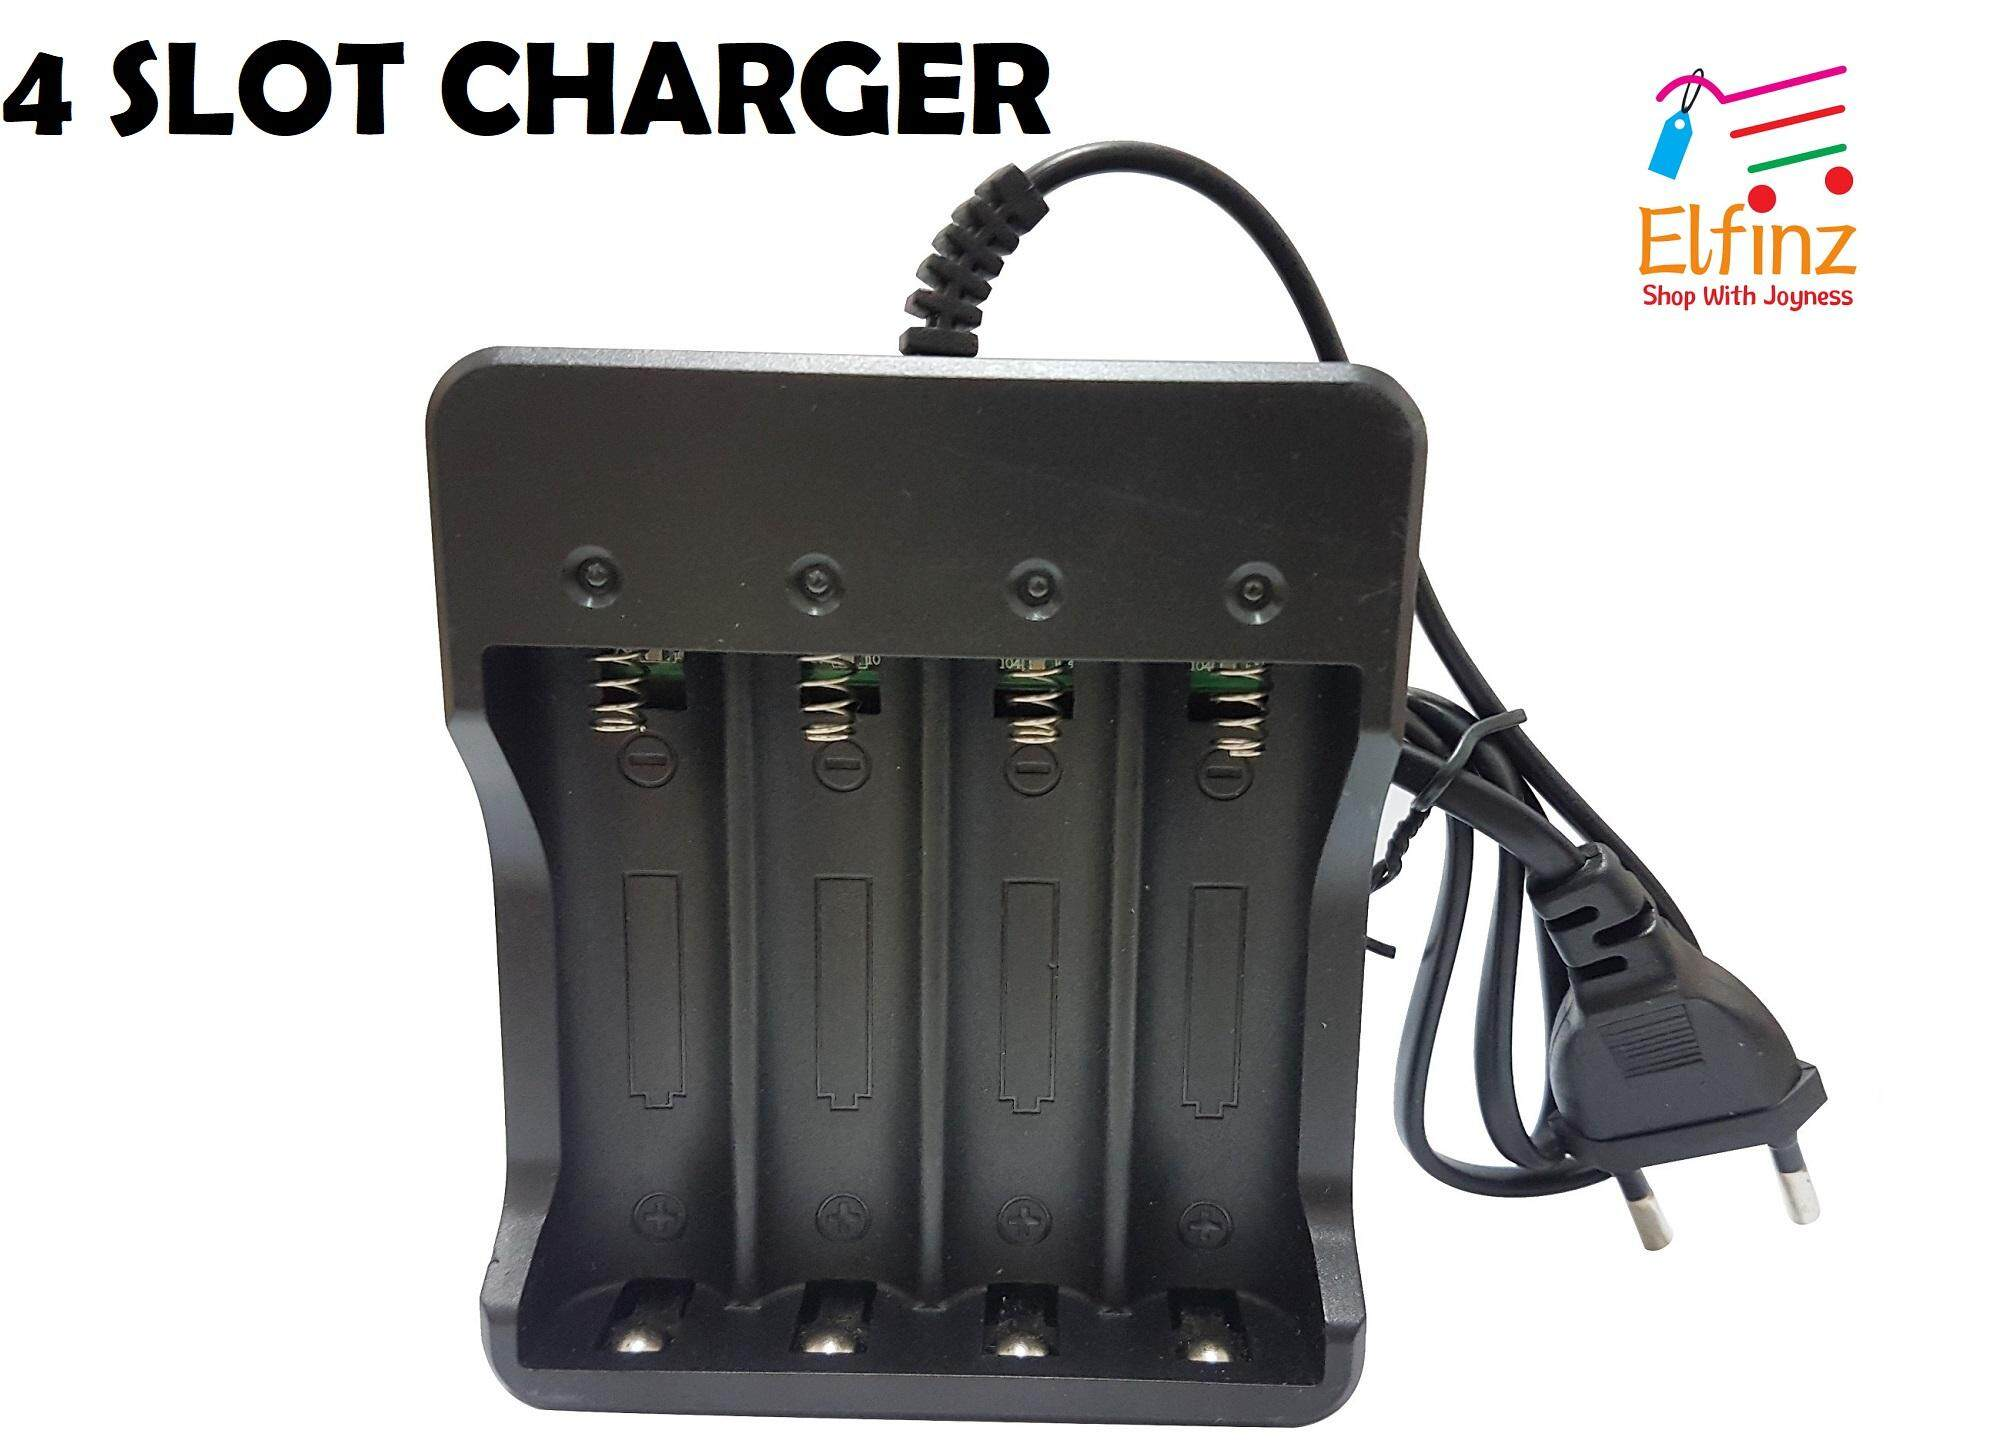 4 SLOT CHARGER 4.2V 3.7V RECHARGEABLE LI-ION BATTERY BUTTON TOP BATERAI 18650 FOR VAPE FOR BUTTON TOP